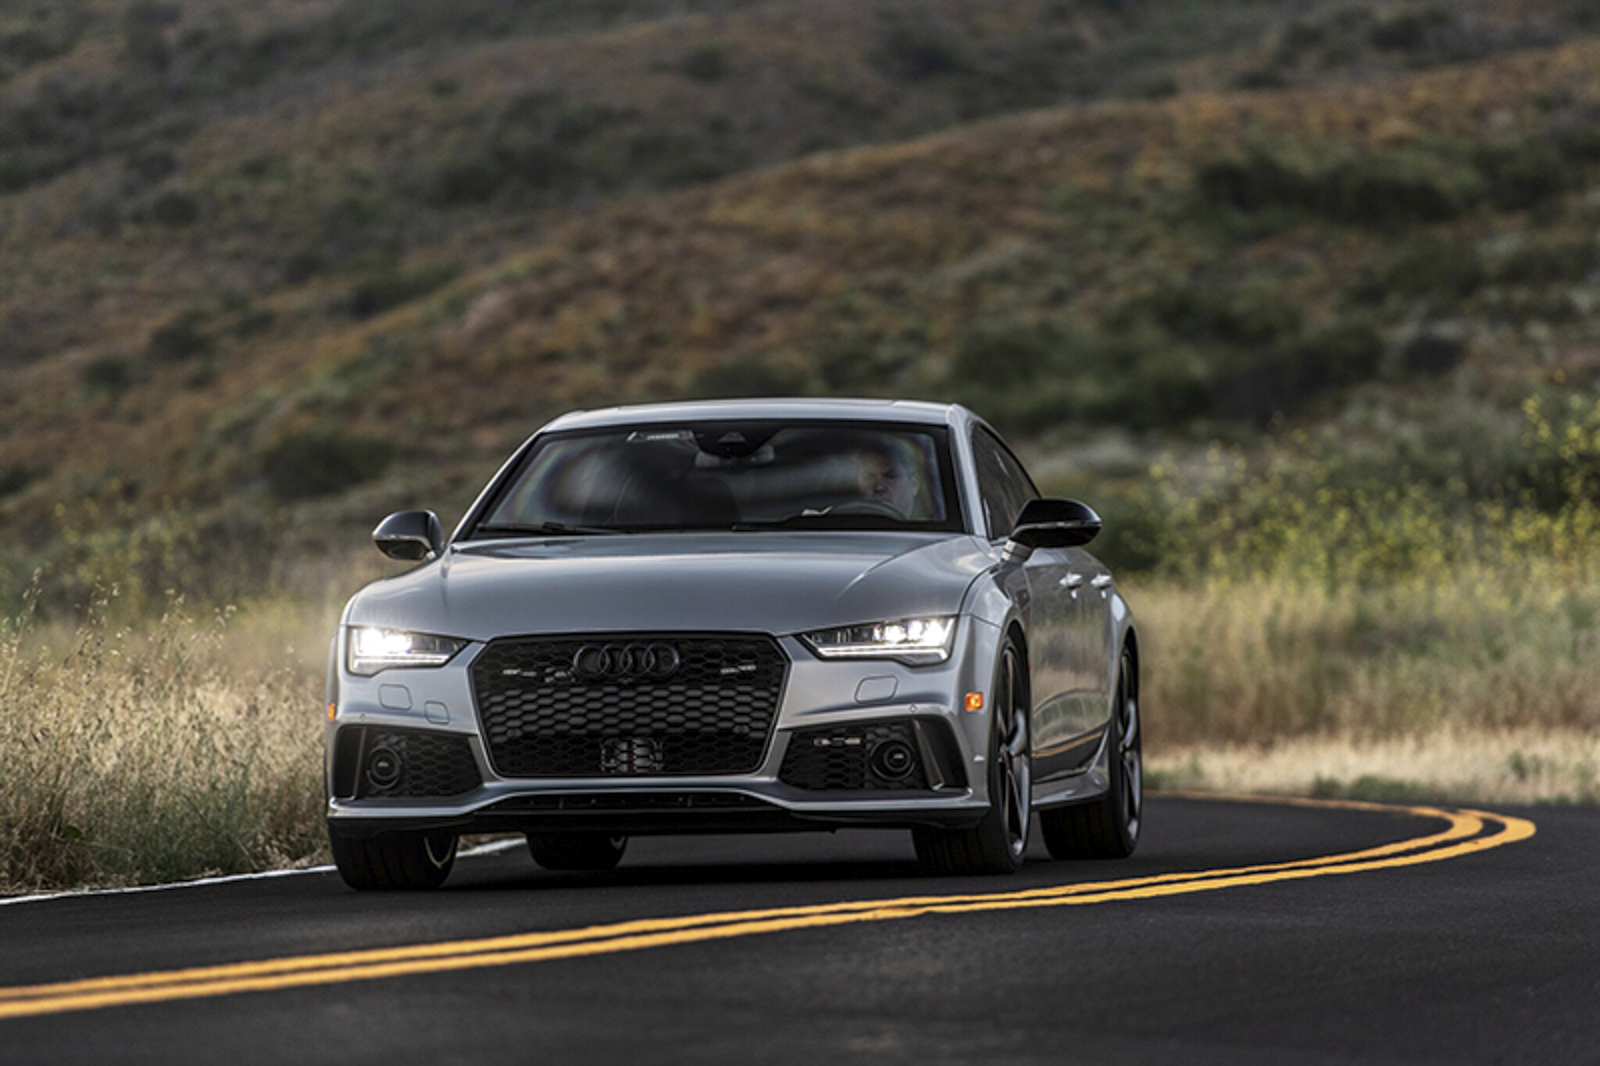 Audi Rs7 0 60 >> 2019 Audi Rs7 By Addarmor Top Speed